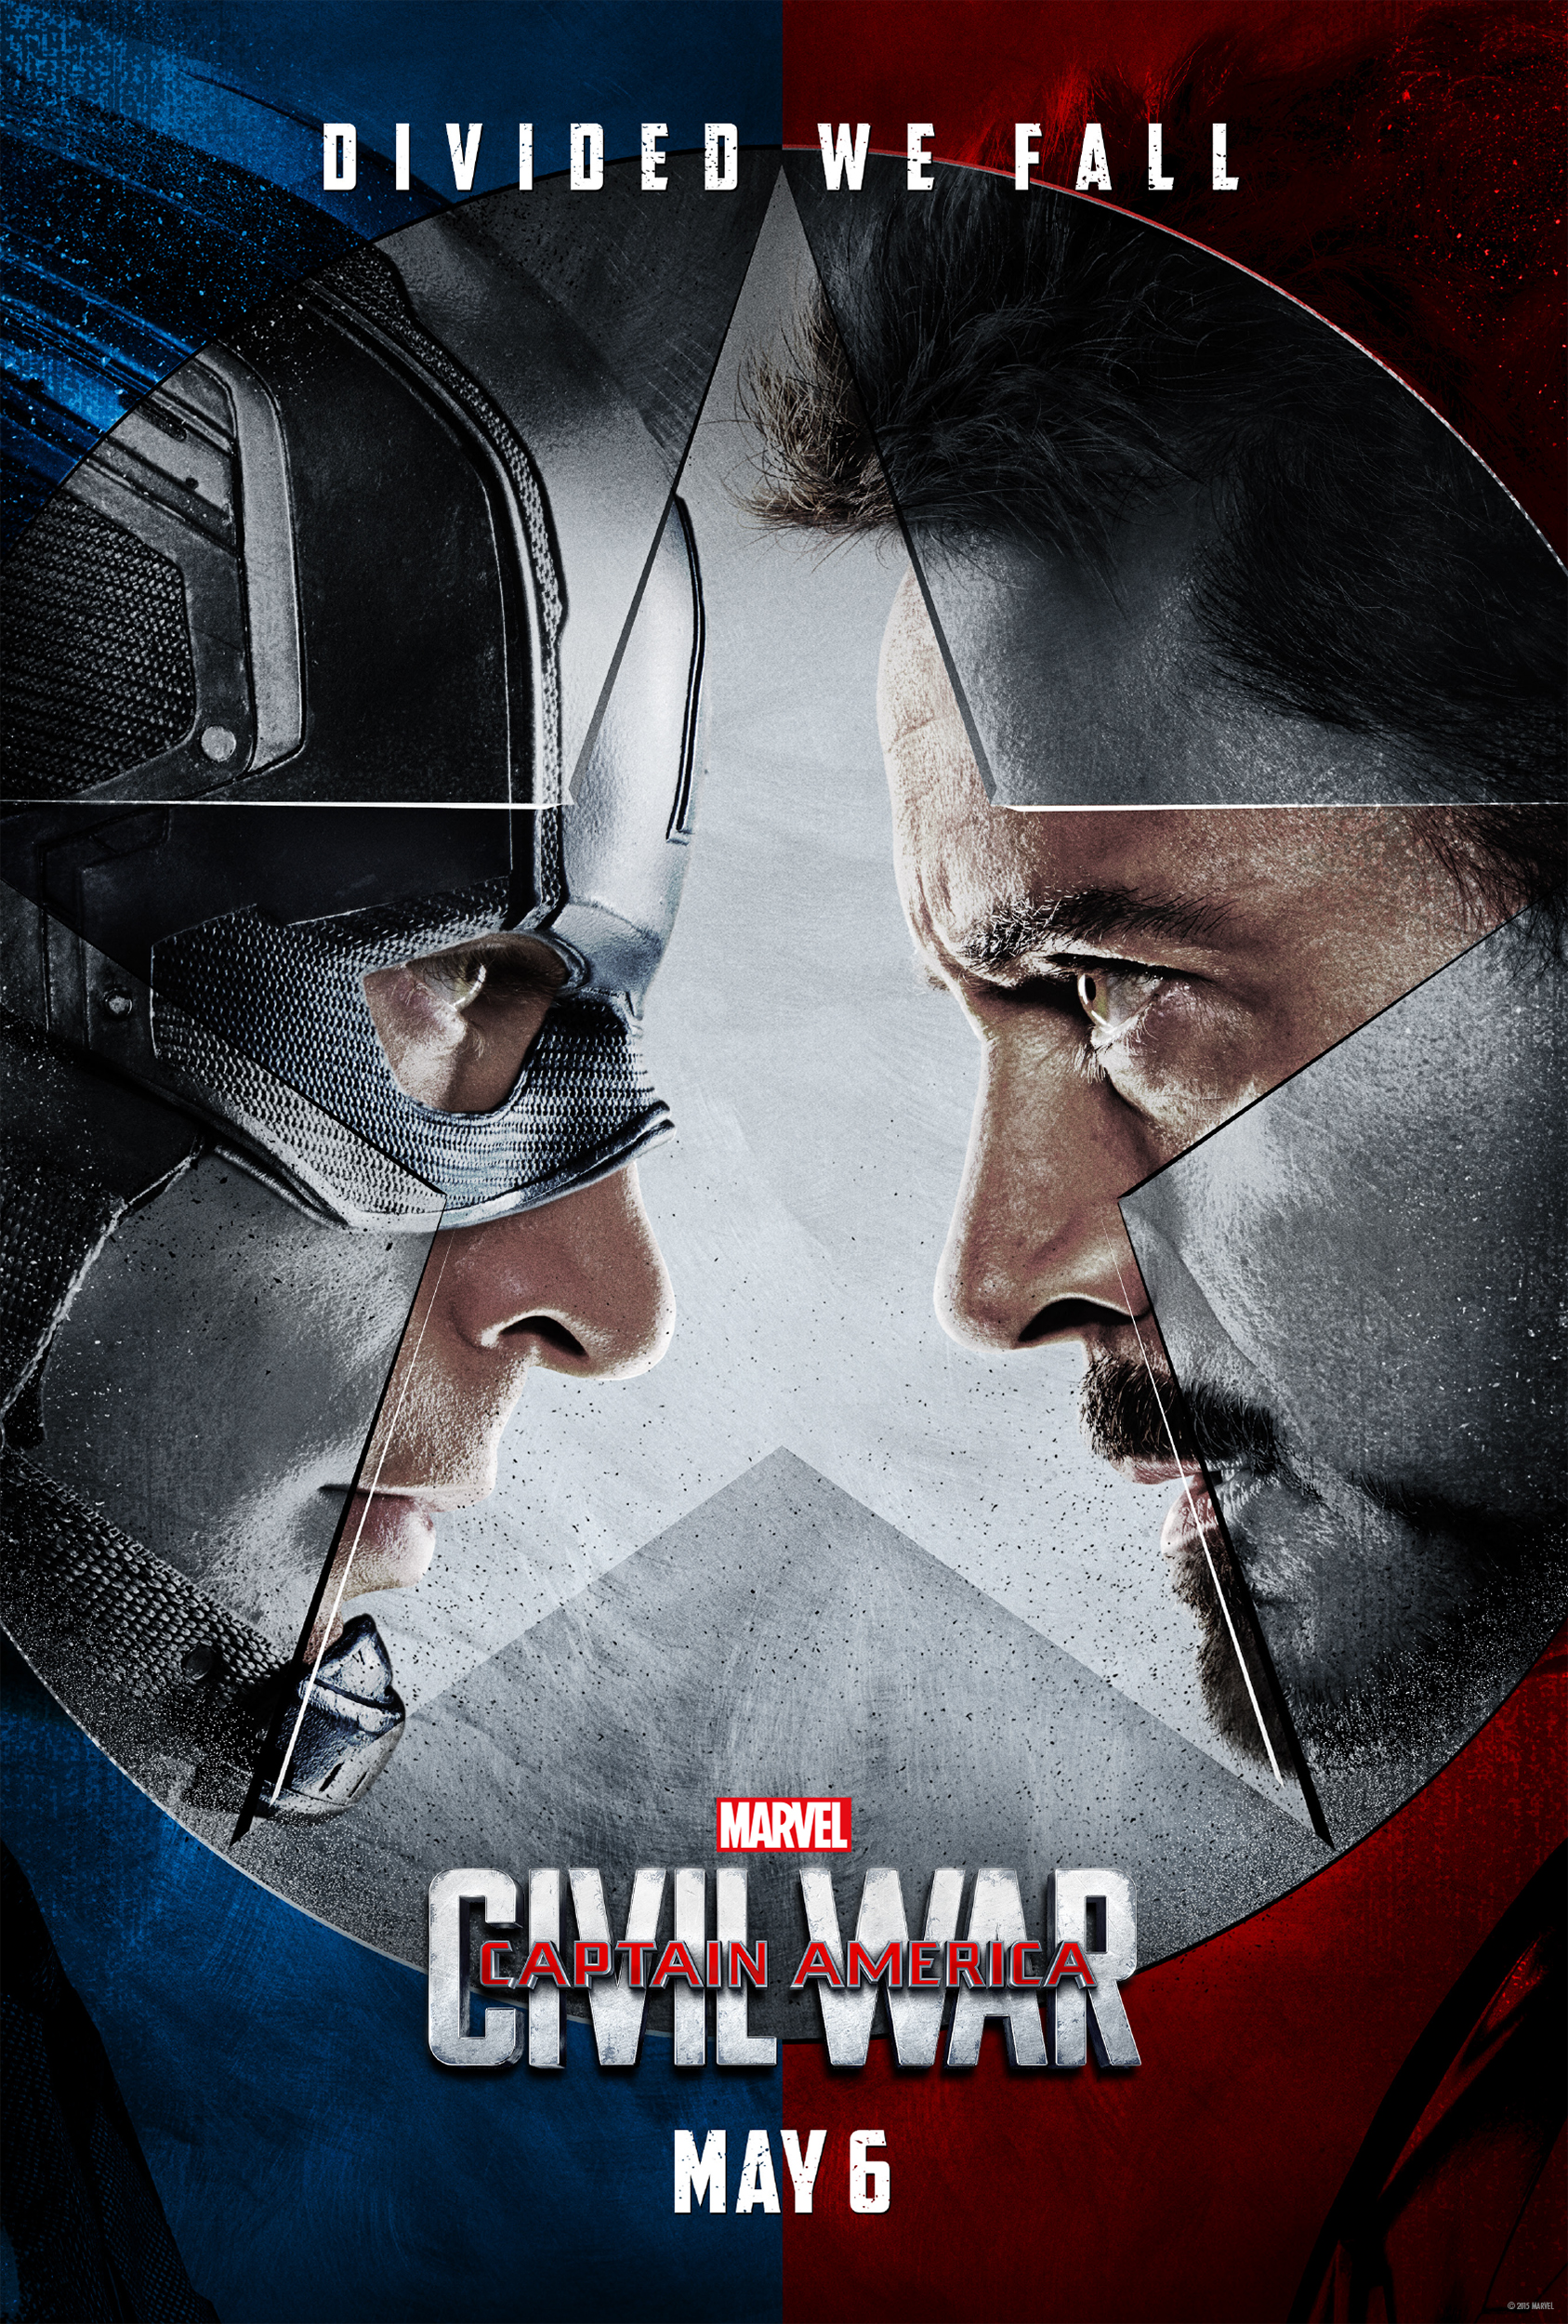 Captain_America_Civil_War_teaser_1_promotional_poster.jpg